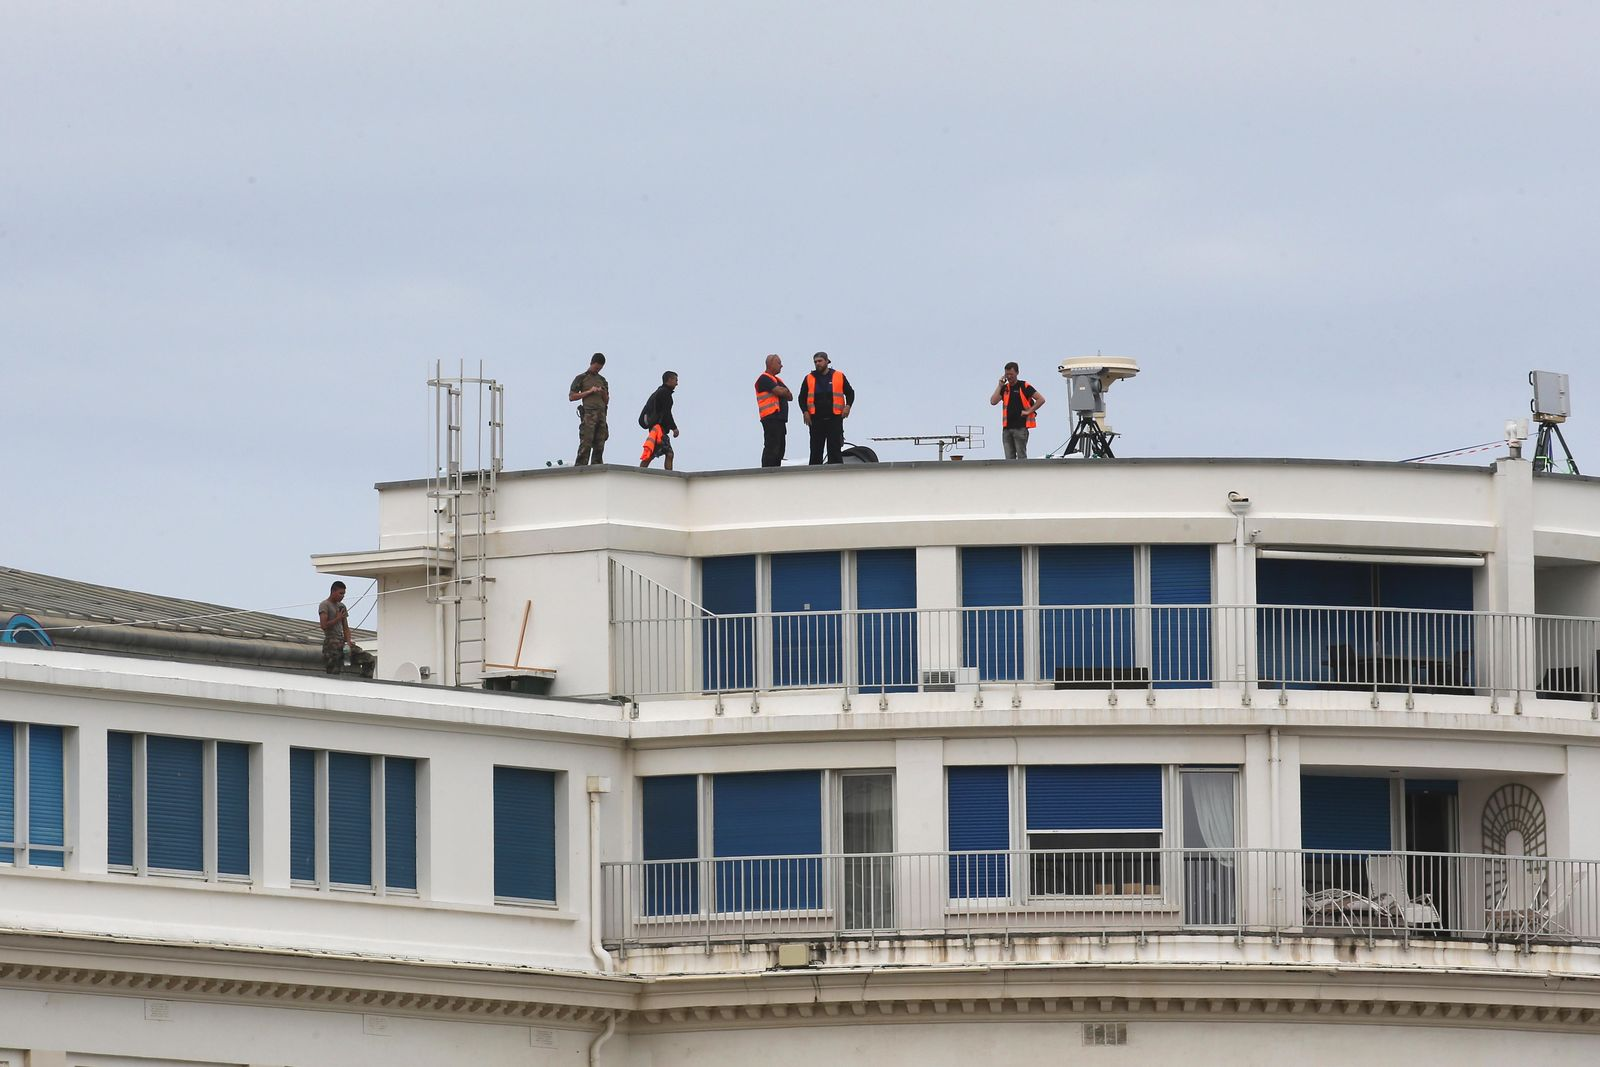 Soldiers and security forces secure the roof of the Casino Bellevue, a venue of the upcoming G7 summit, Tuesday, Aug.20, 2019 in Biarritz, southwestern France. French police are setting up checkpoints and combing Atlantic beaches to secure the southwestern coast for world leaders coming for the G-7 summit. (AP Photo/Bob Edme)